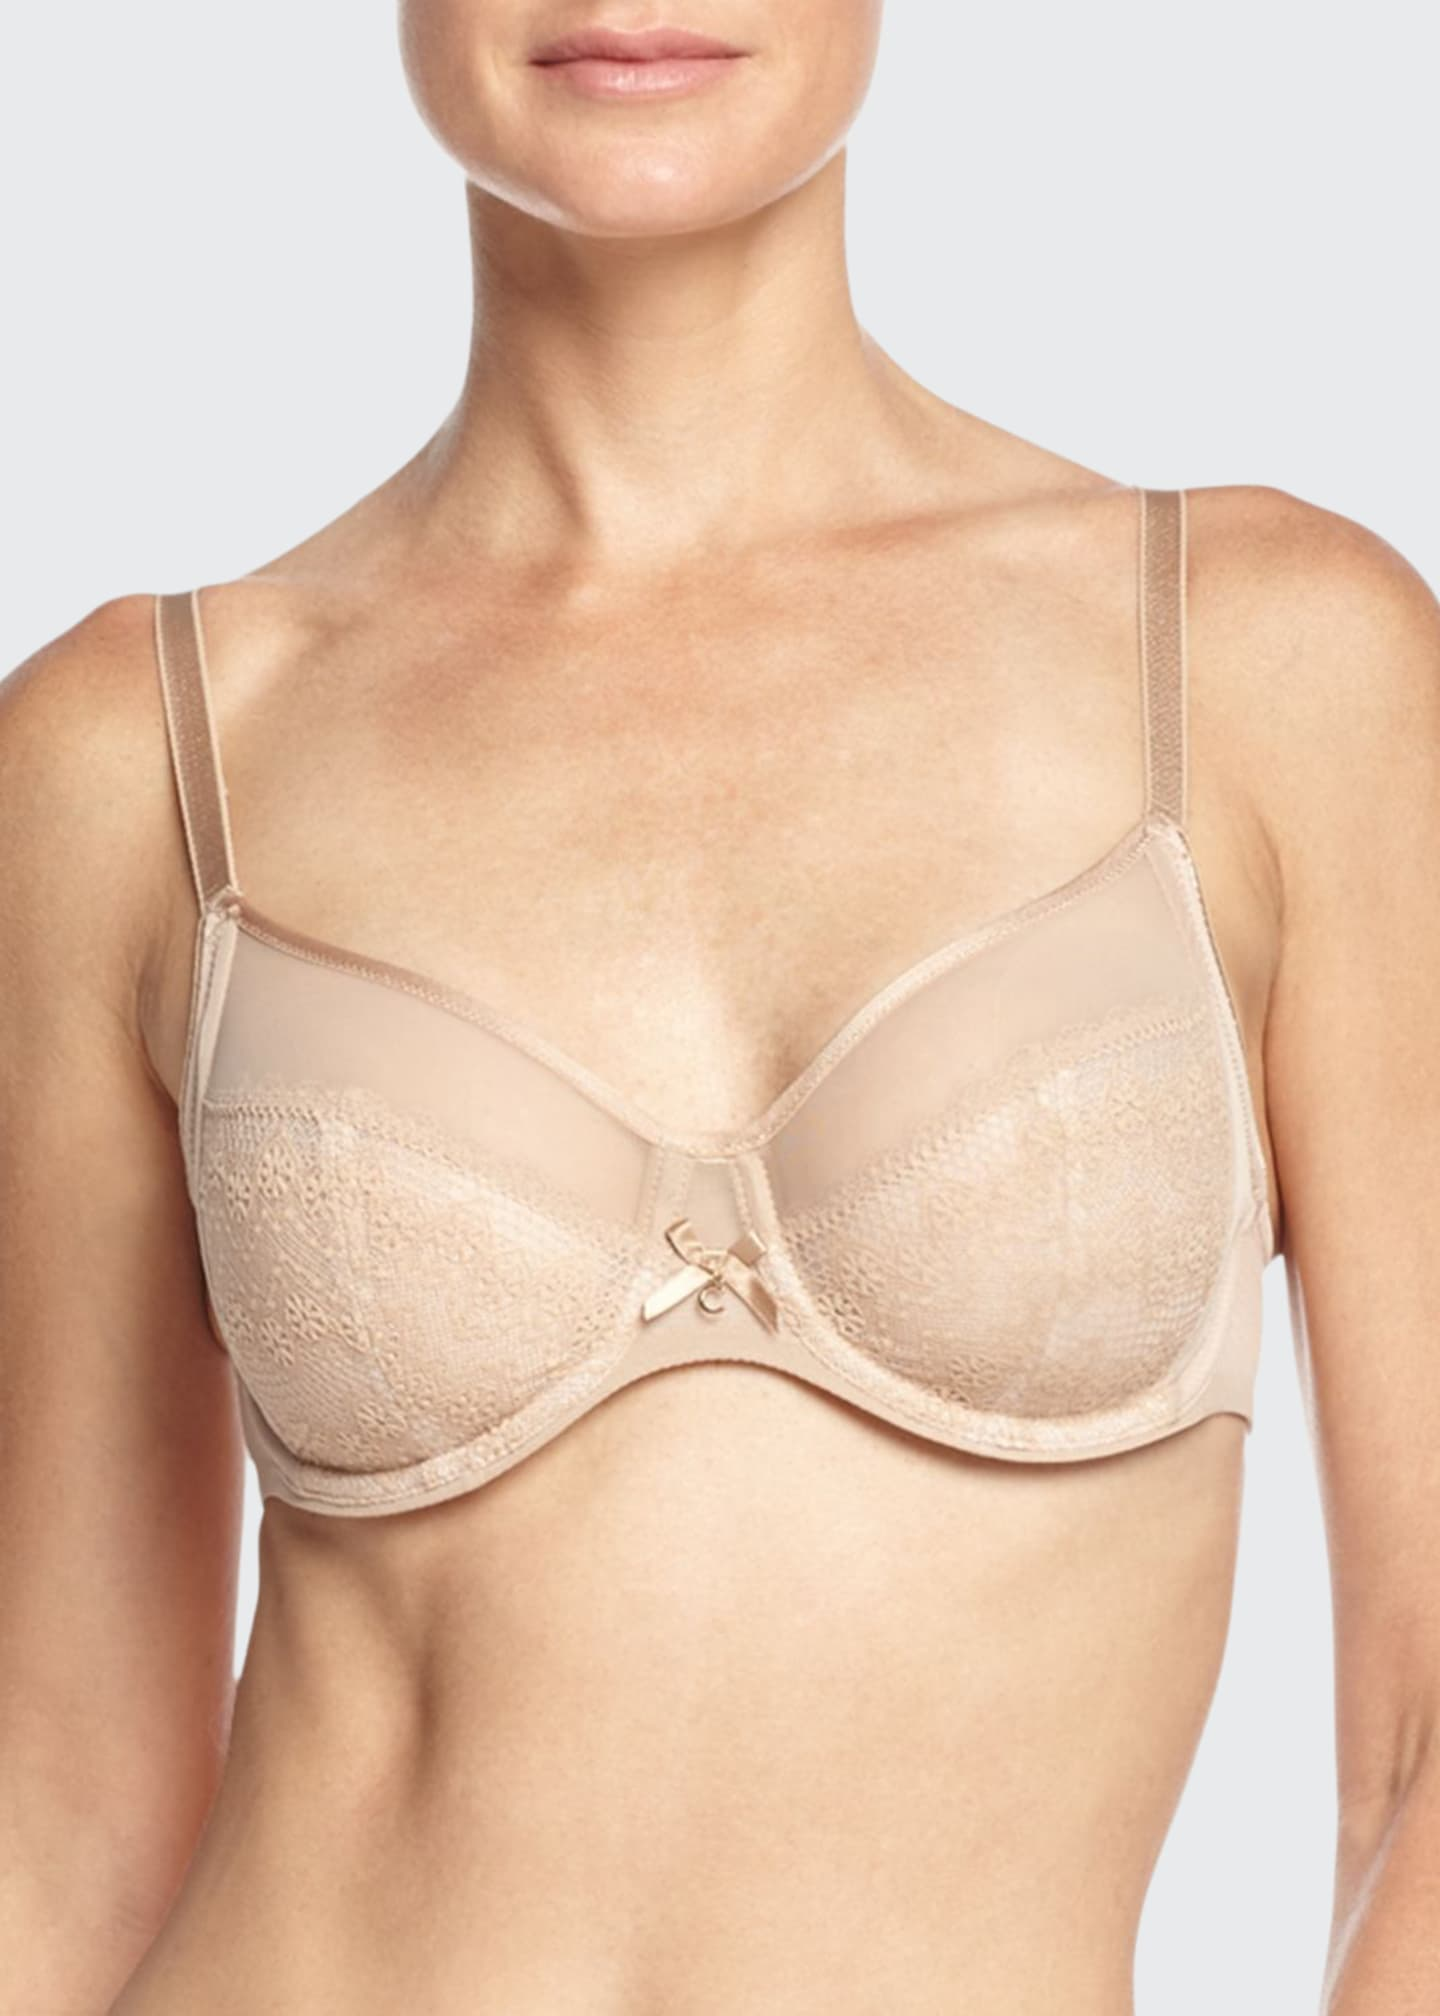 Chantelle Revele Moi Perfect Fit Underwire Bra